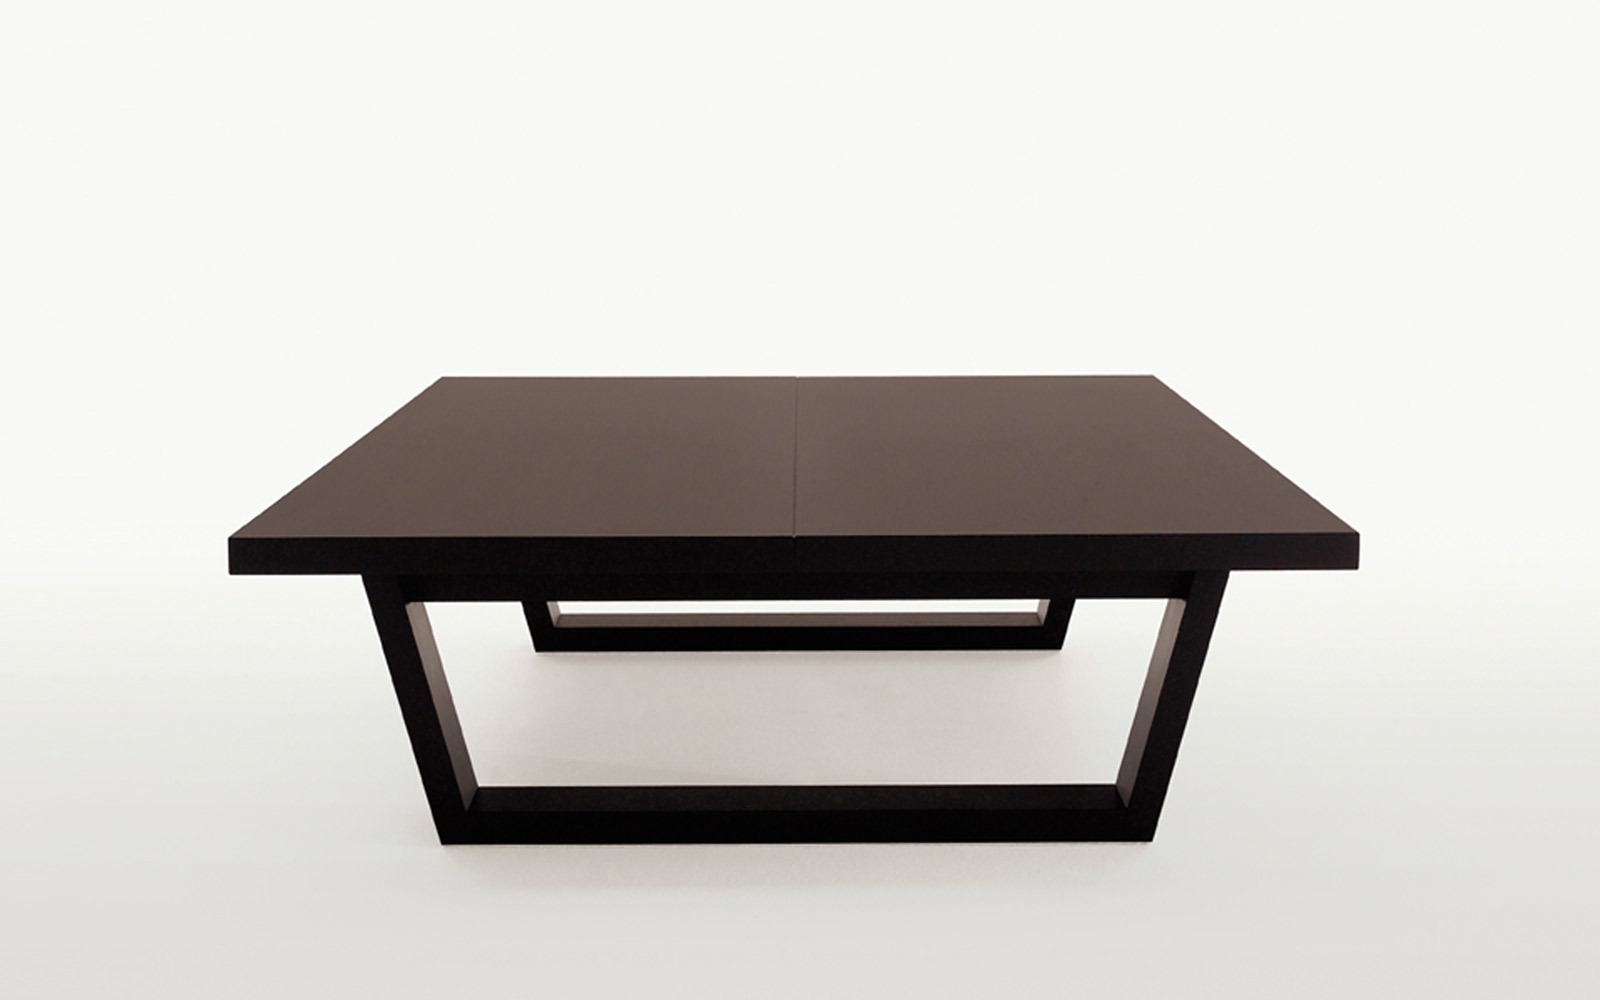 B&b Italia Maxalto Xilos Maxalto B Andb Italia Xilos Coffee Table Buy From Campbell